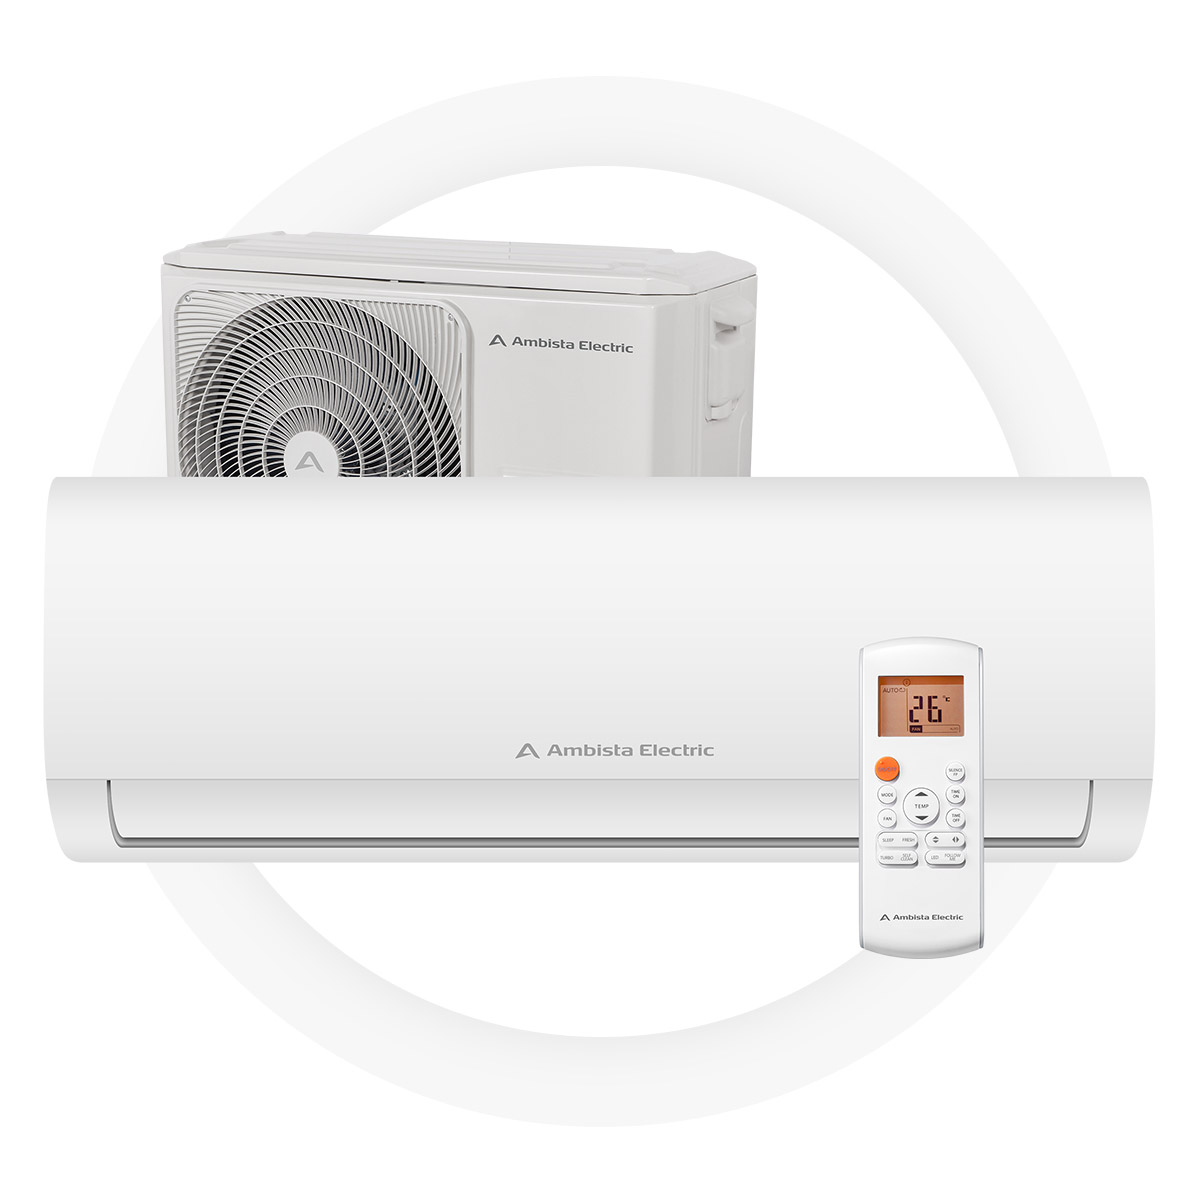 Ambista electric azure25-lnA - Good Seasonal Coefficient of Performance of 4,0A+ energy efficiency on heating and A++ on coolingReaches desired work temperature quicklyHeats up to 60 square meters2 year full factory warranty